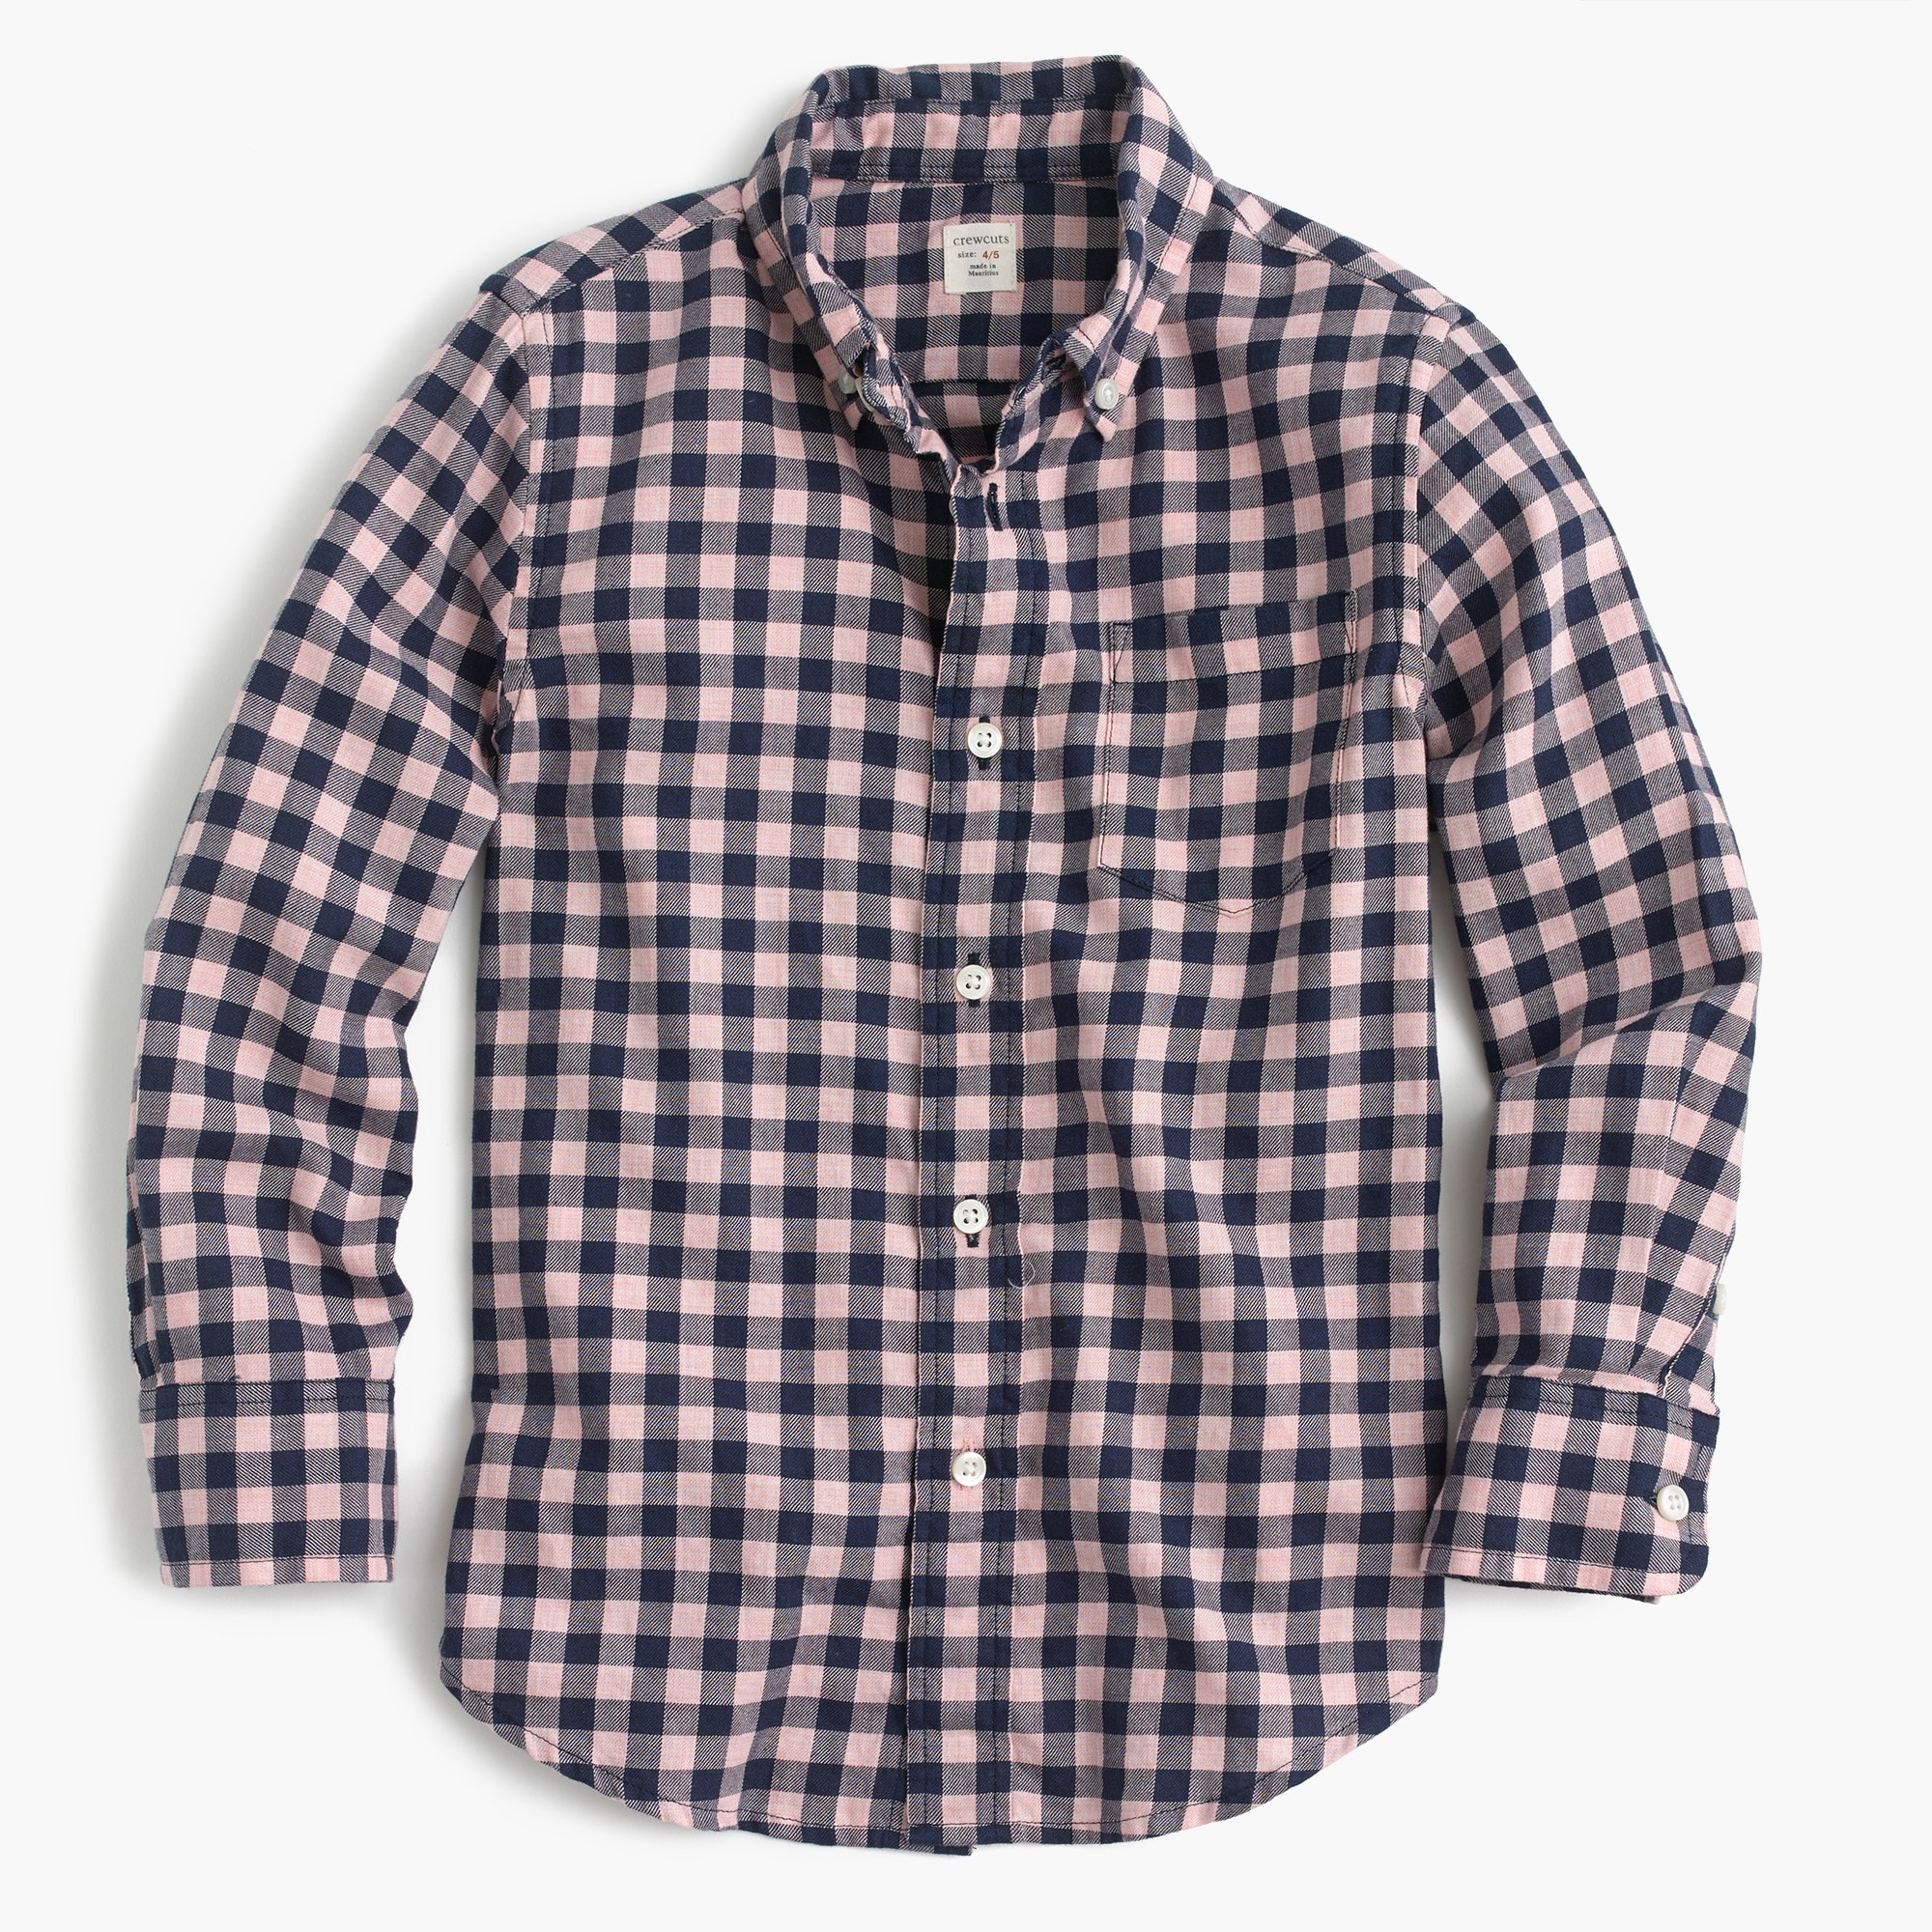 Kids' midweight flannel shirt in navy check